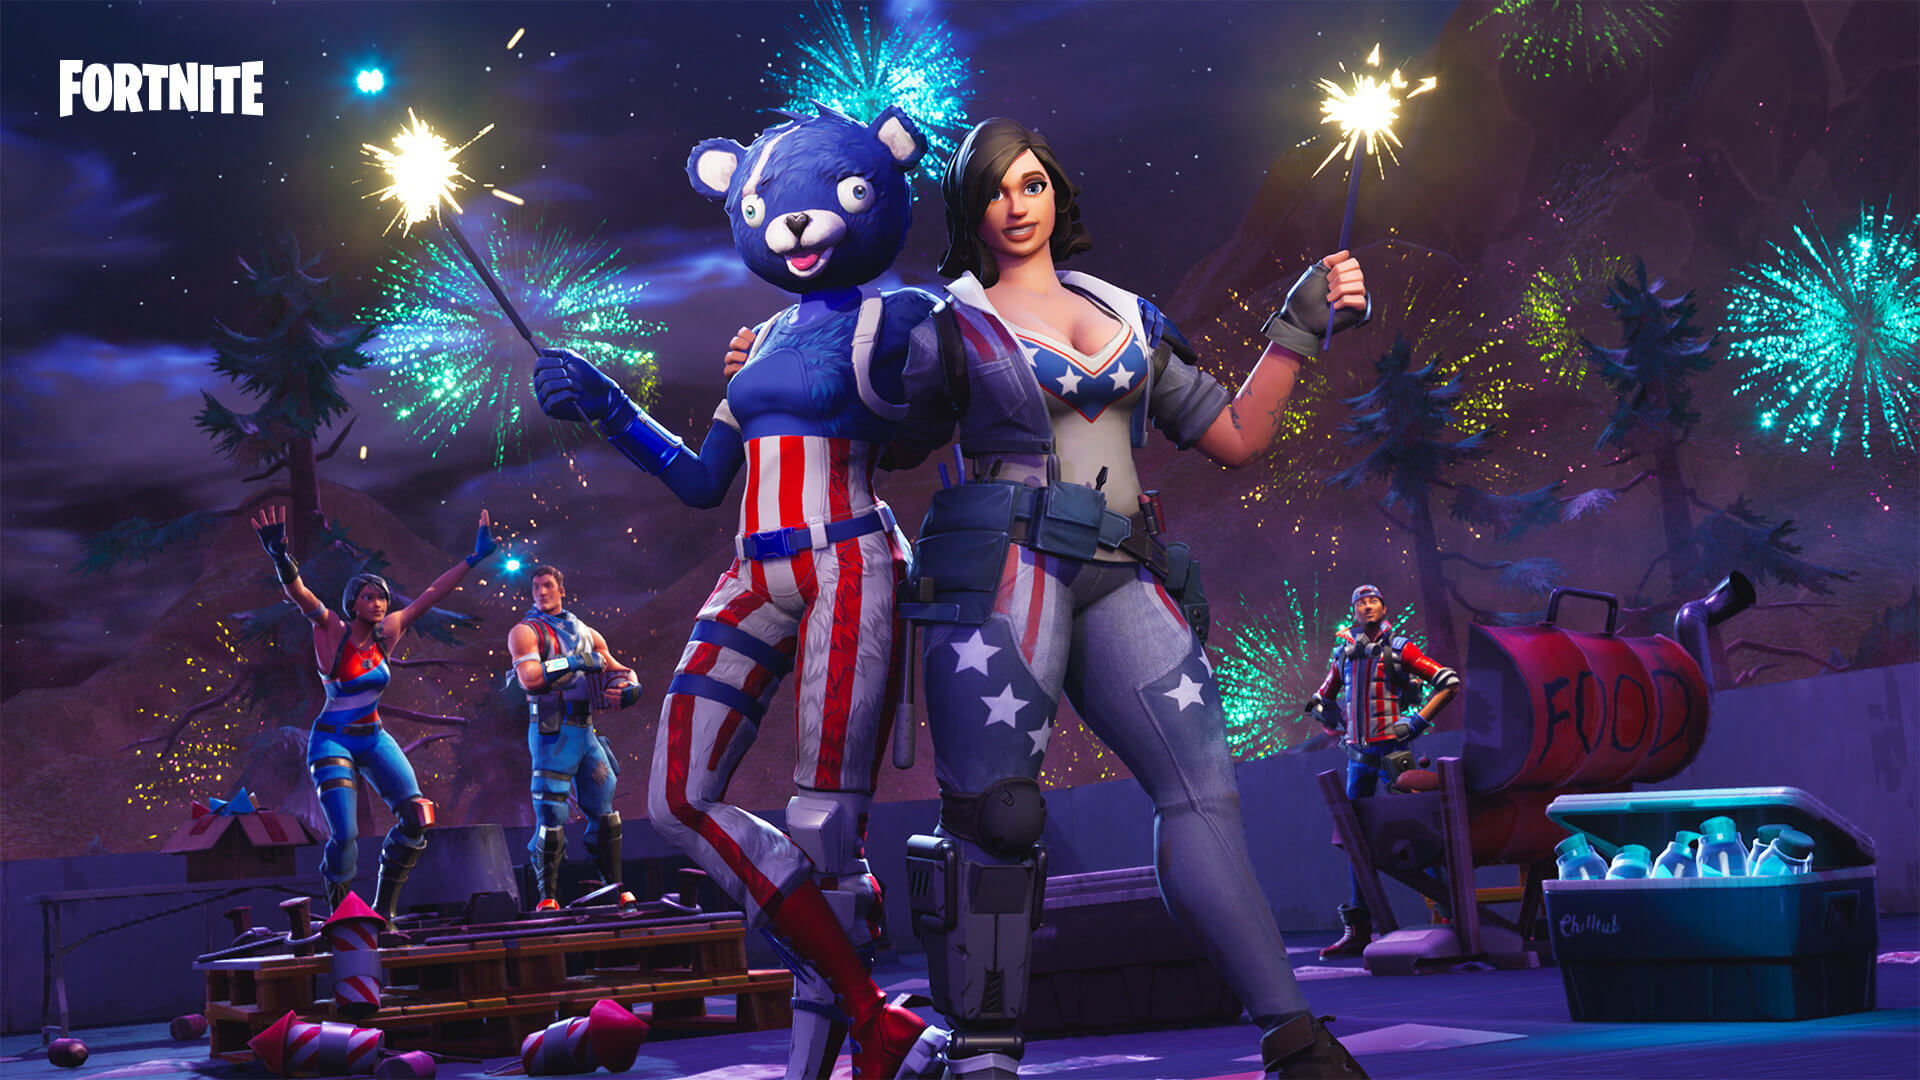 Fortnite blamed for divorces in United Kingdom